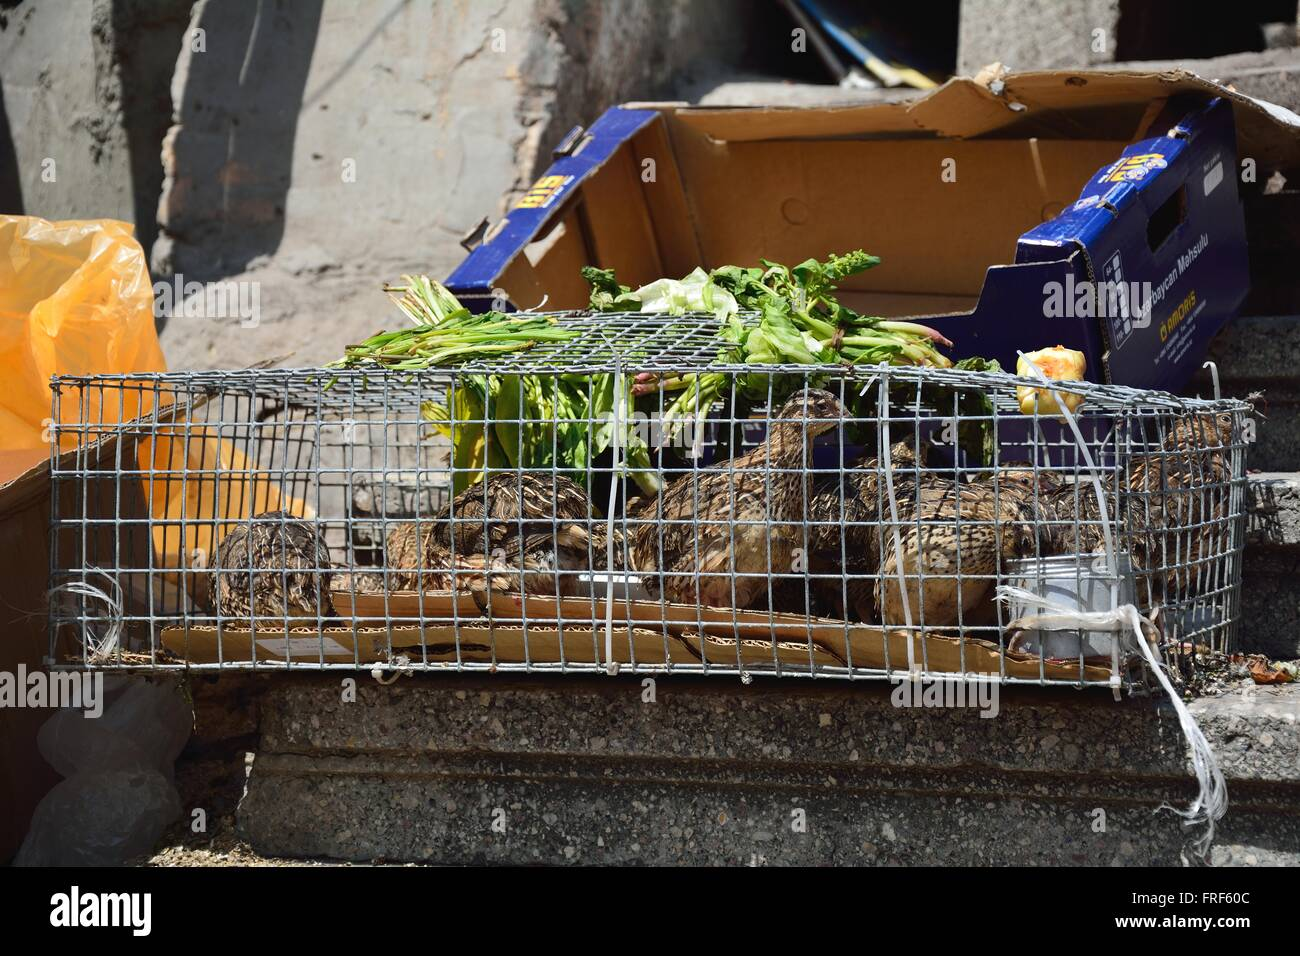 Quails displayed in a cage in a market in Baku, capital of